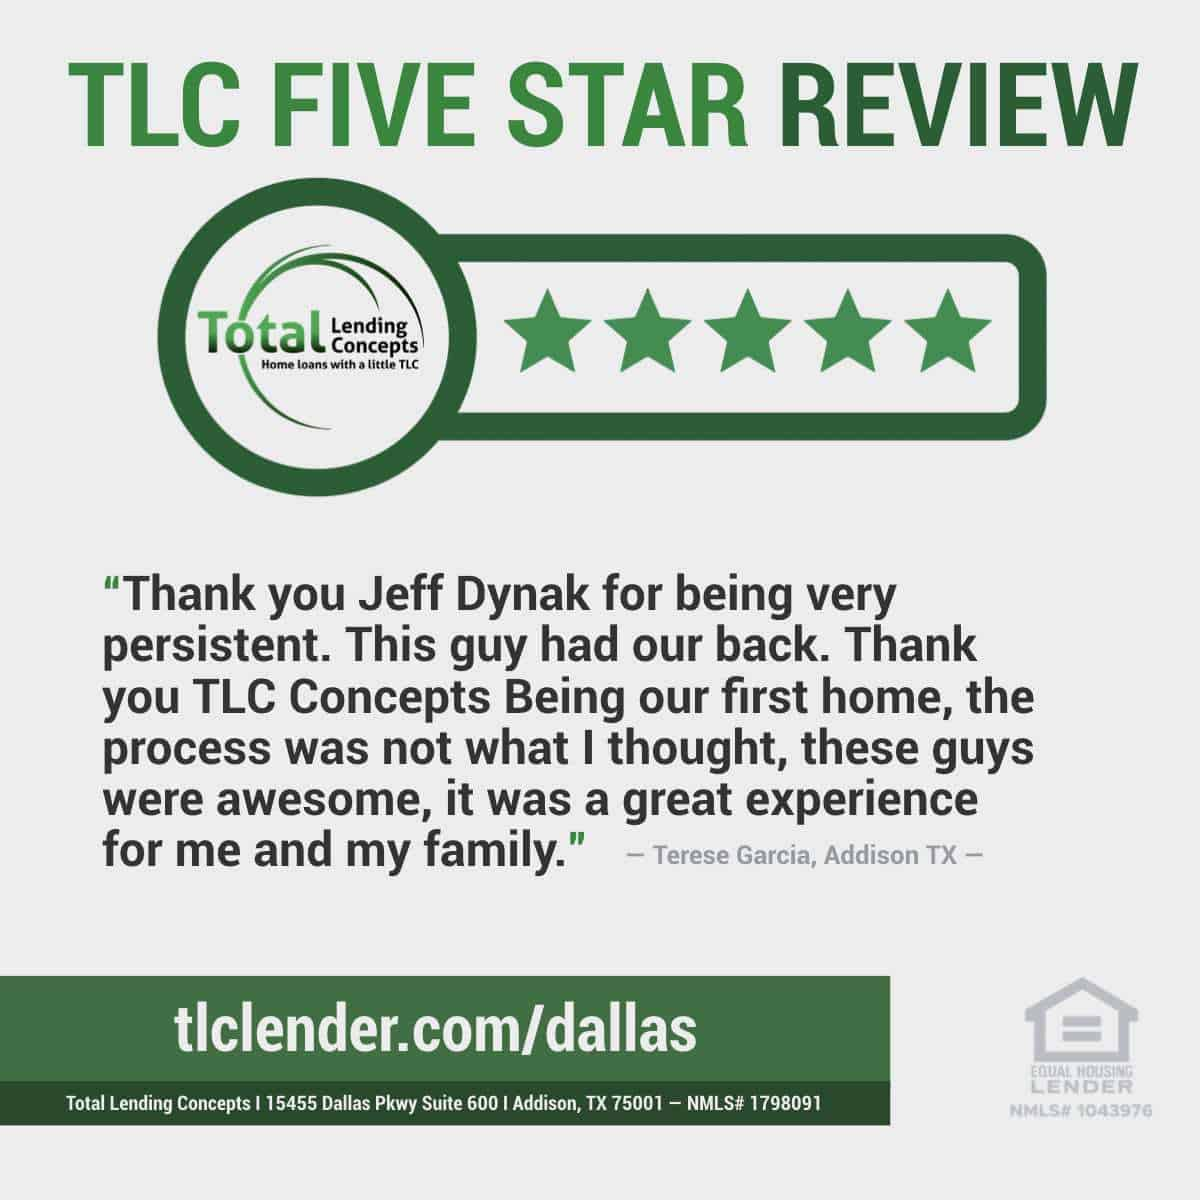 Total Lending Concepts Five Star Review Jeff Dynak in Addison Texas for Terese Garcia